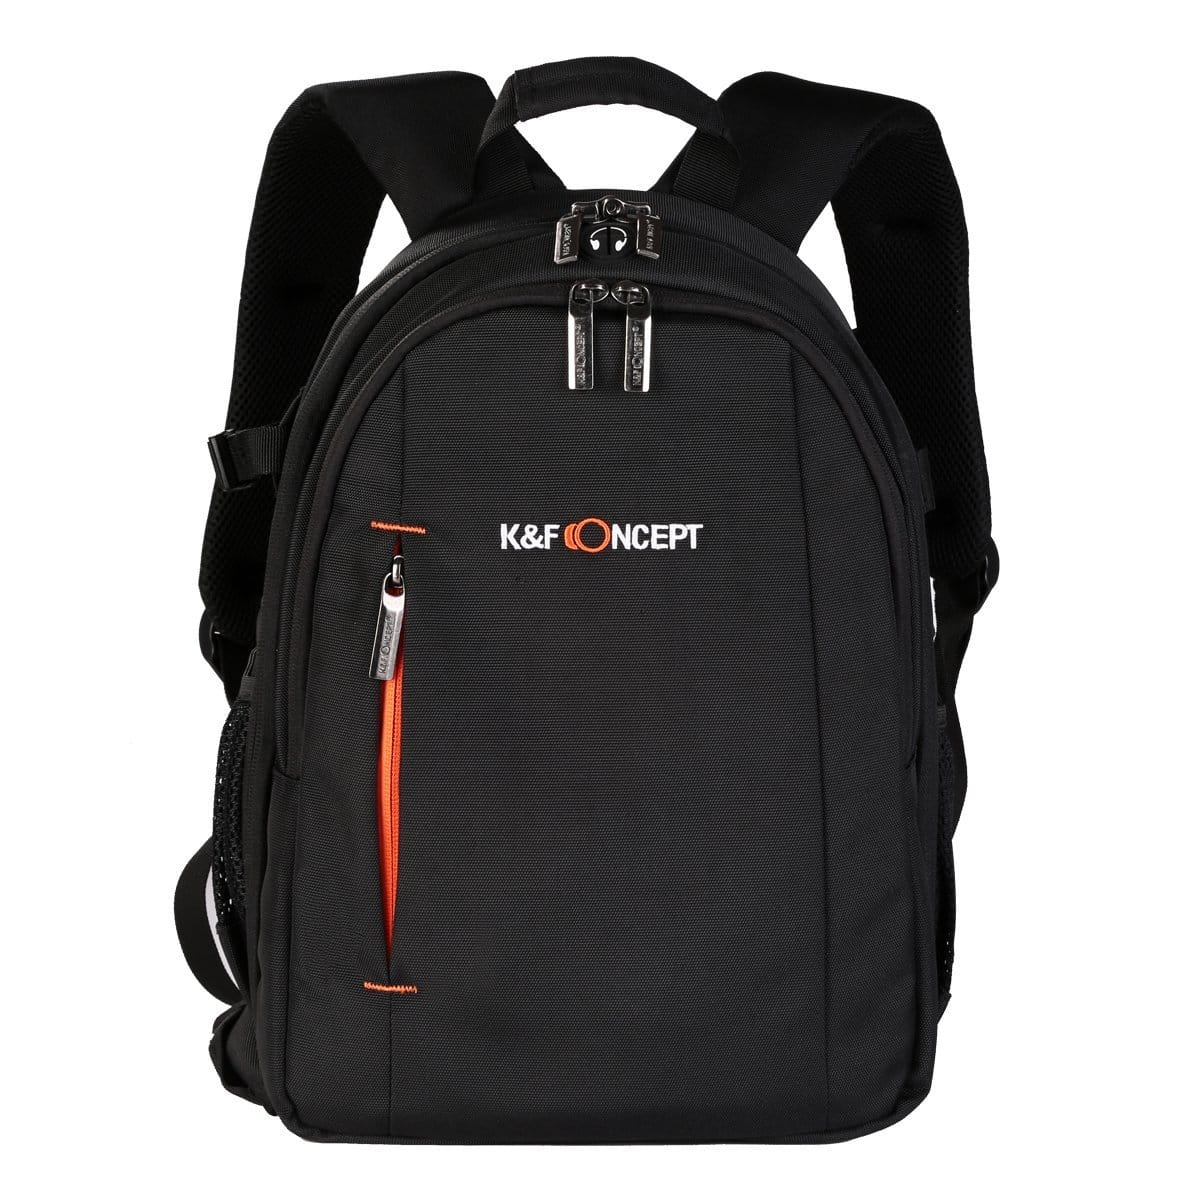 DSLR Camera bag - $39.99 (Regular price $69.99) FS